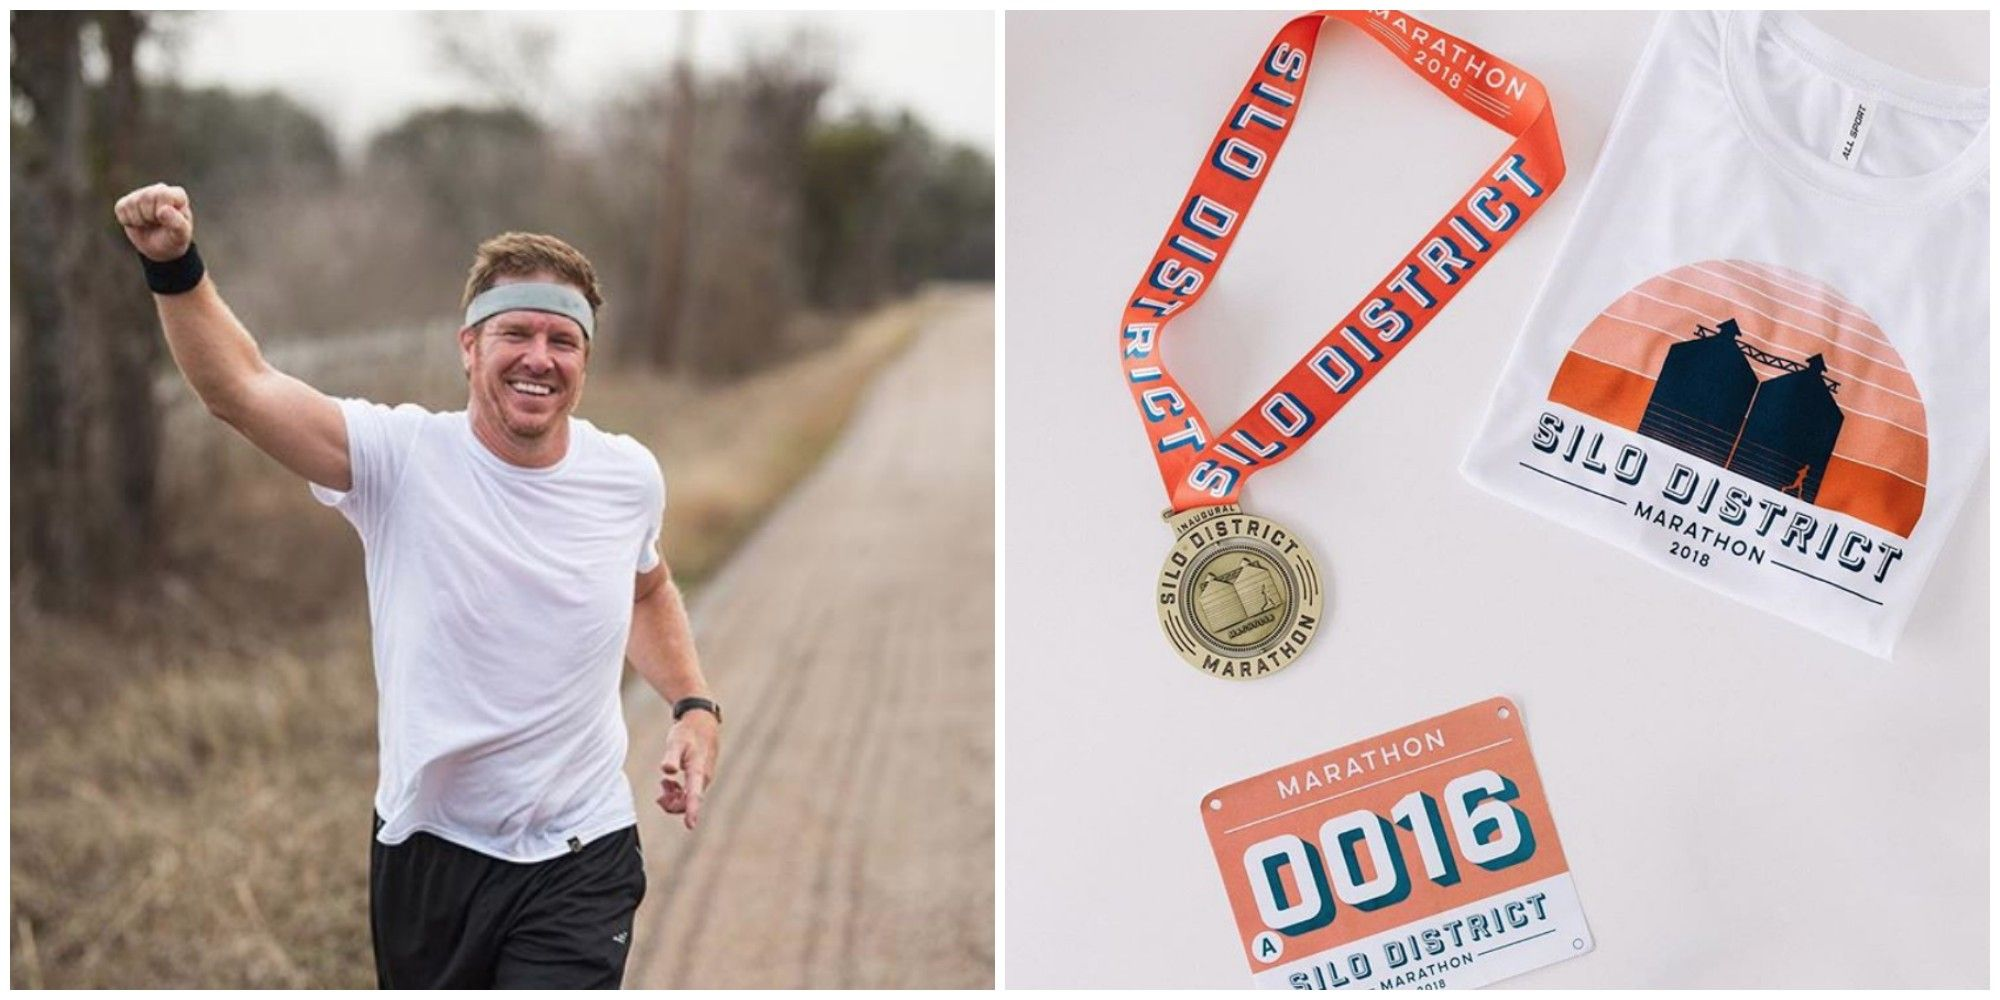 chip gaines silo district marathon - waco marathon